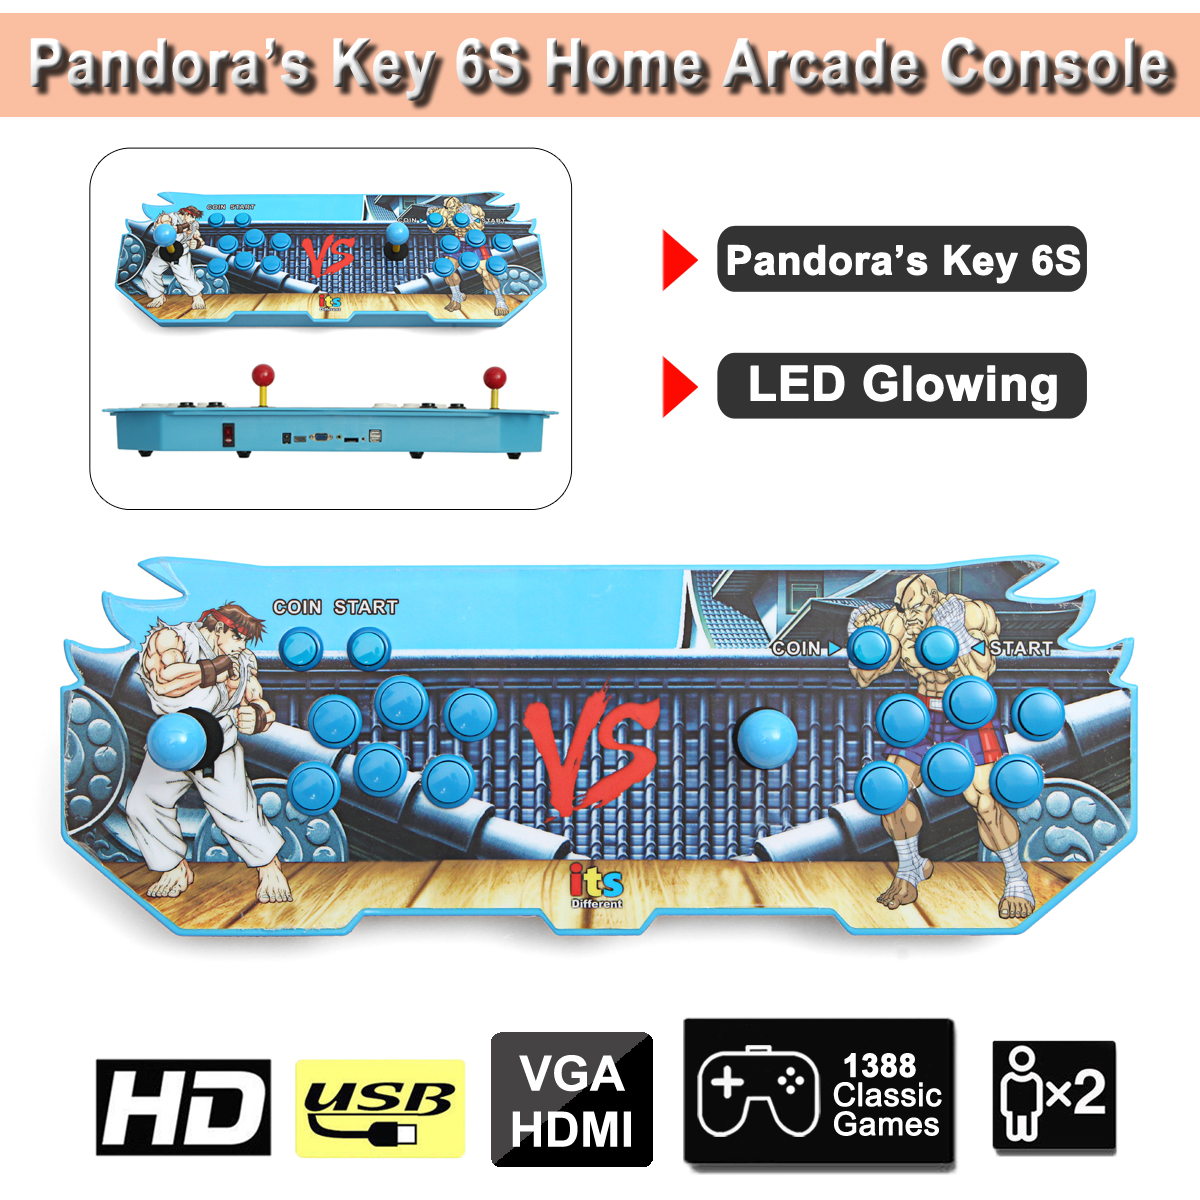 LED Glowing Light Key 6s 1388 in 1 Game Arcade Console usb Joystick Arcade Buttons with 2 players Control Machine